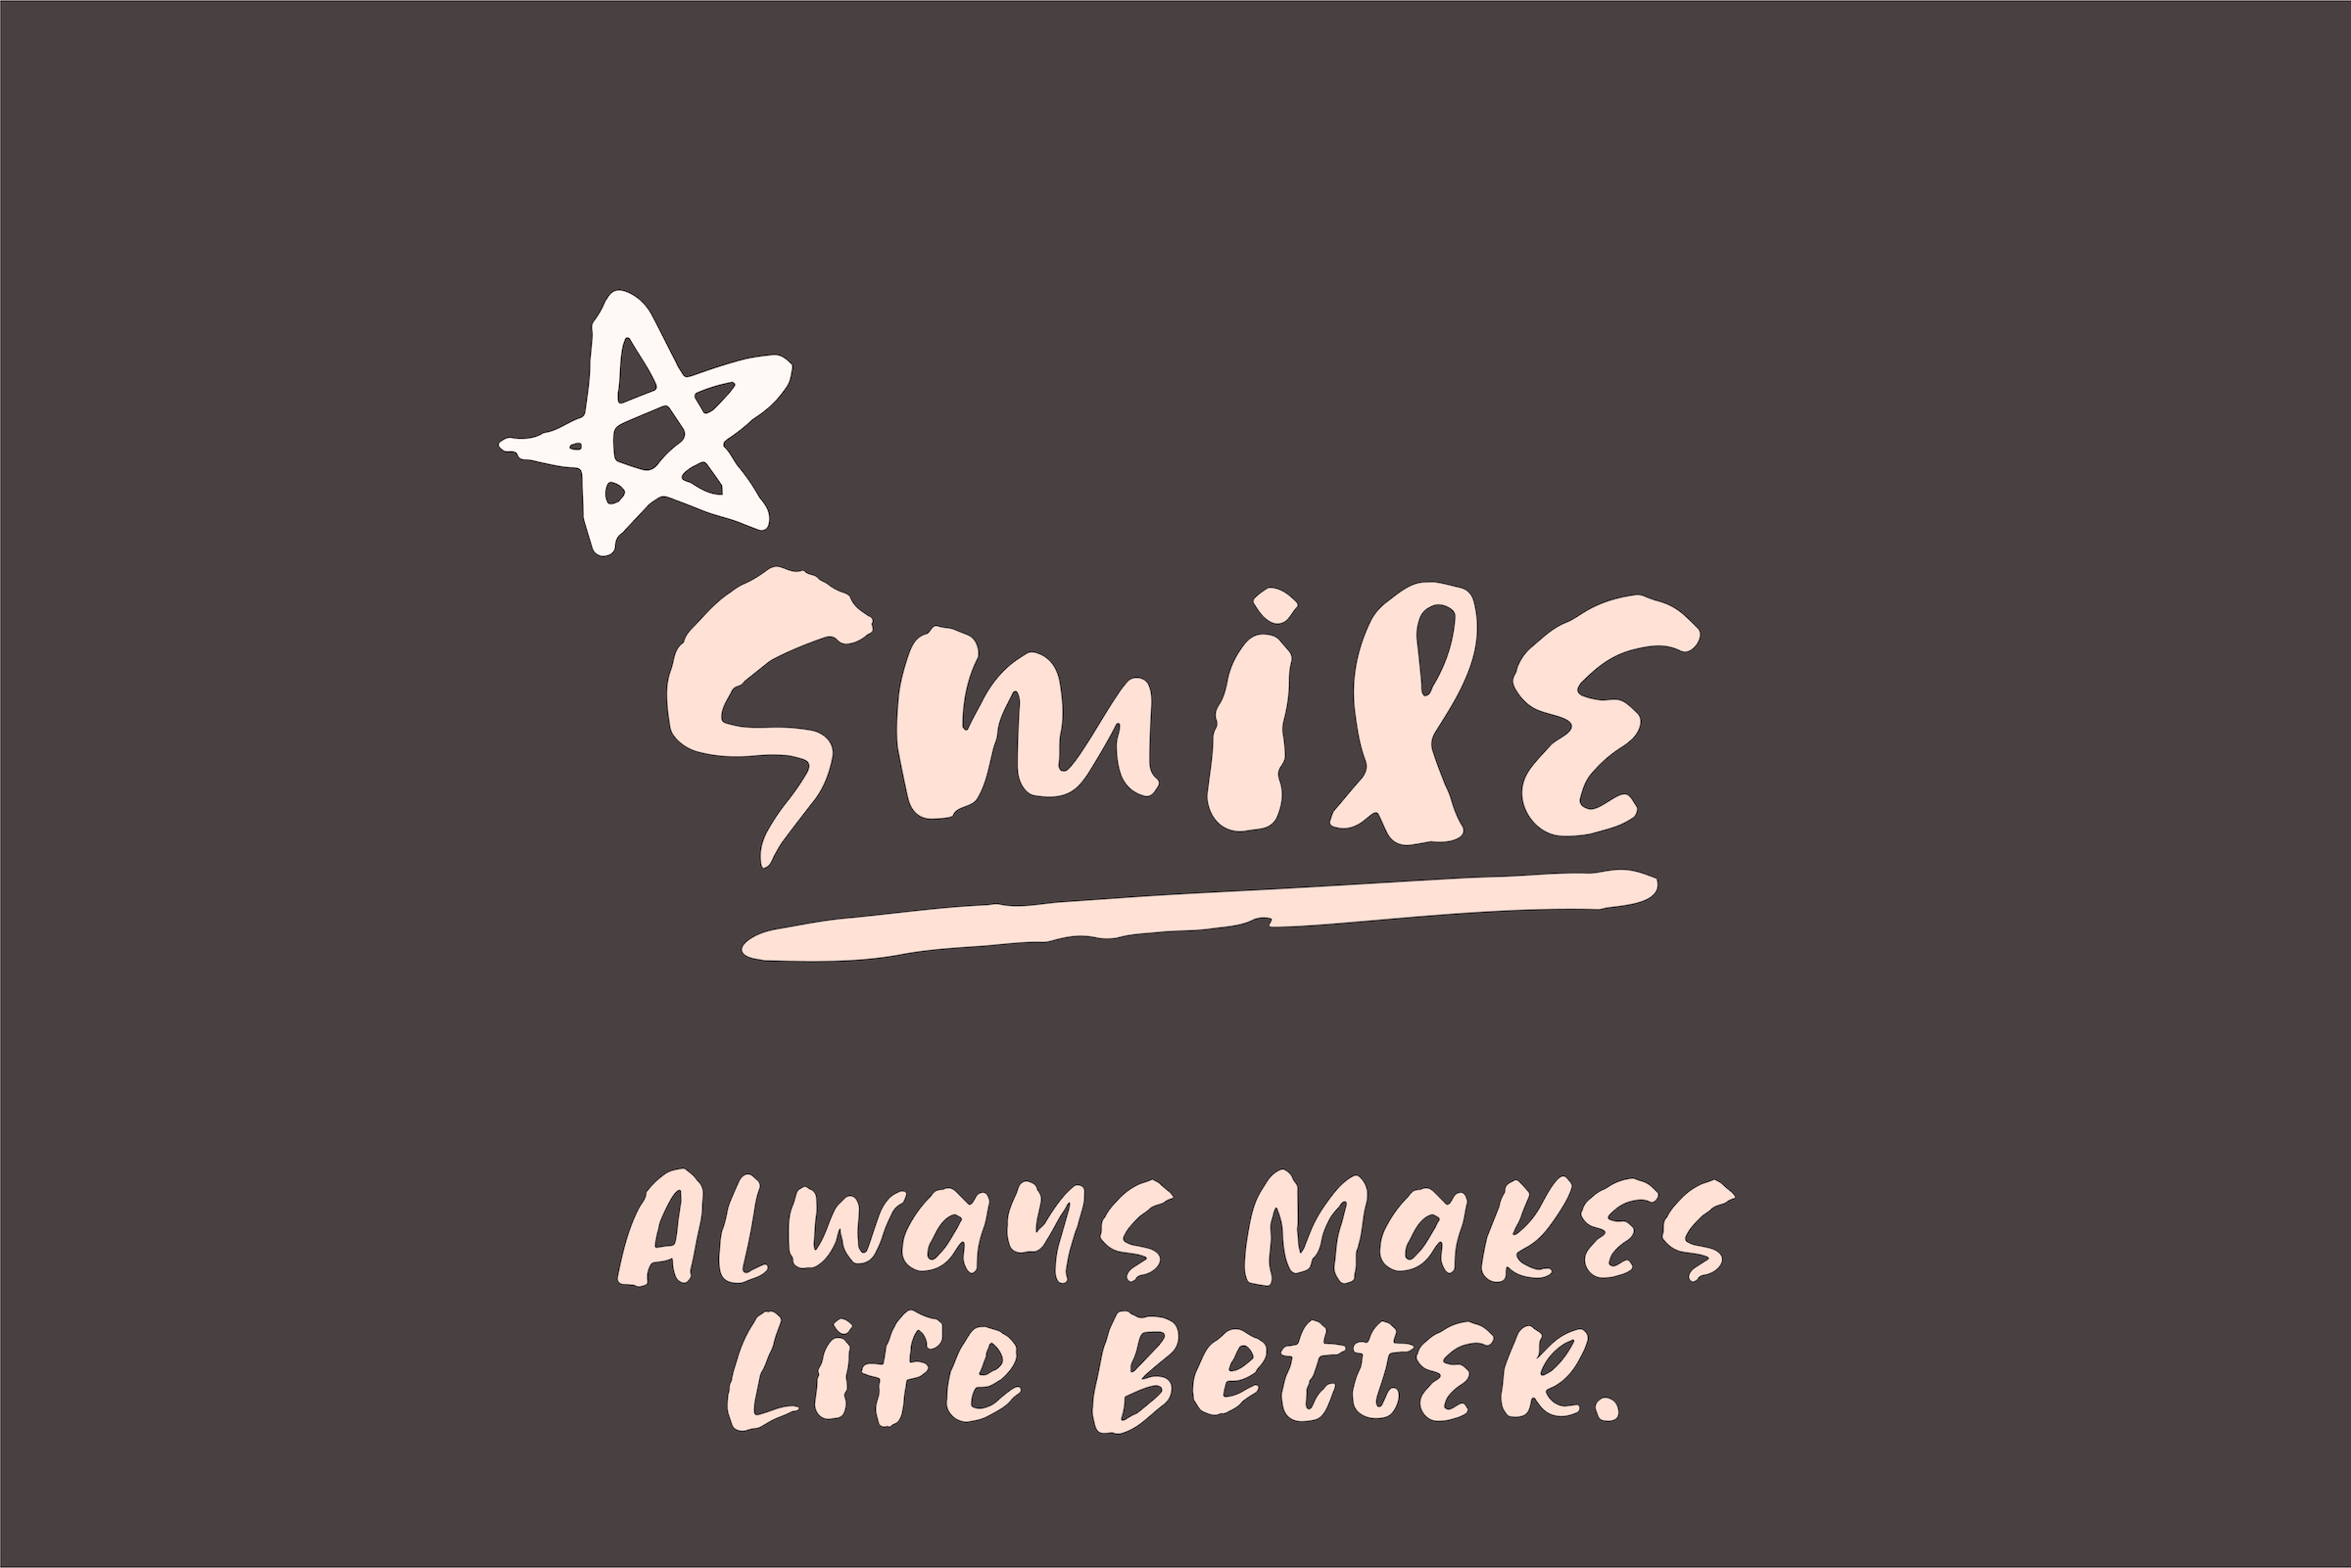 Share Smile - Brush Font Dingbats example image 5